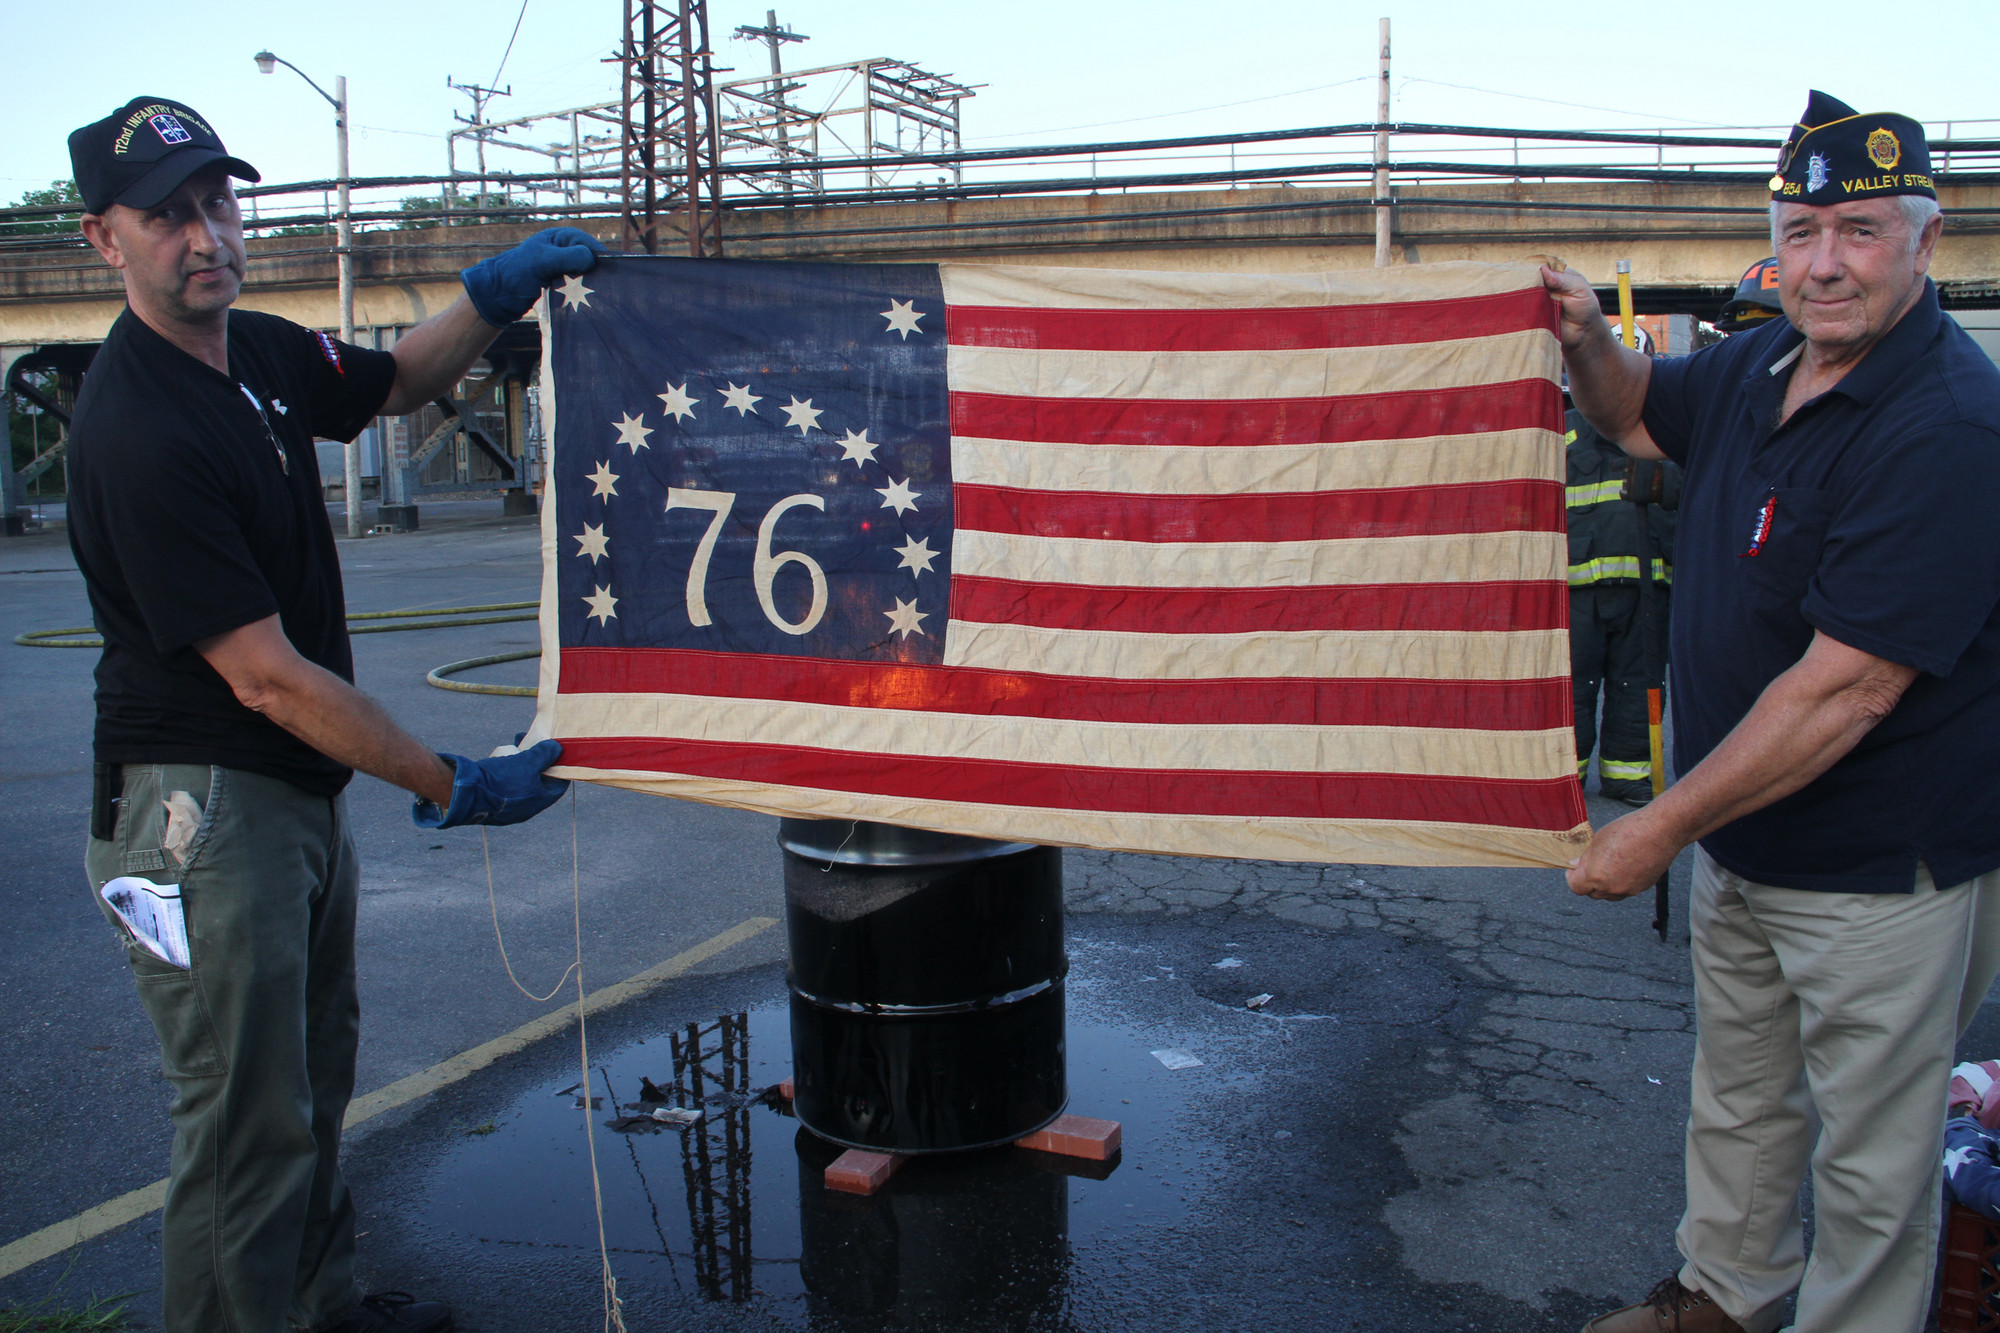 American Legion Post 854 members Eddie Nachreiner and Bob Gendron showed an old bi-centennial flag that was disposed of last Friday evening.